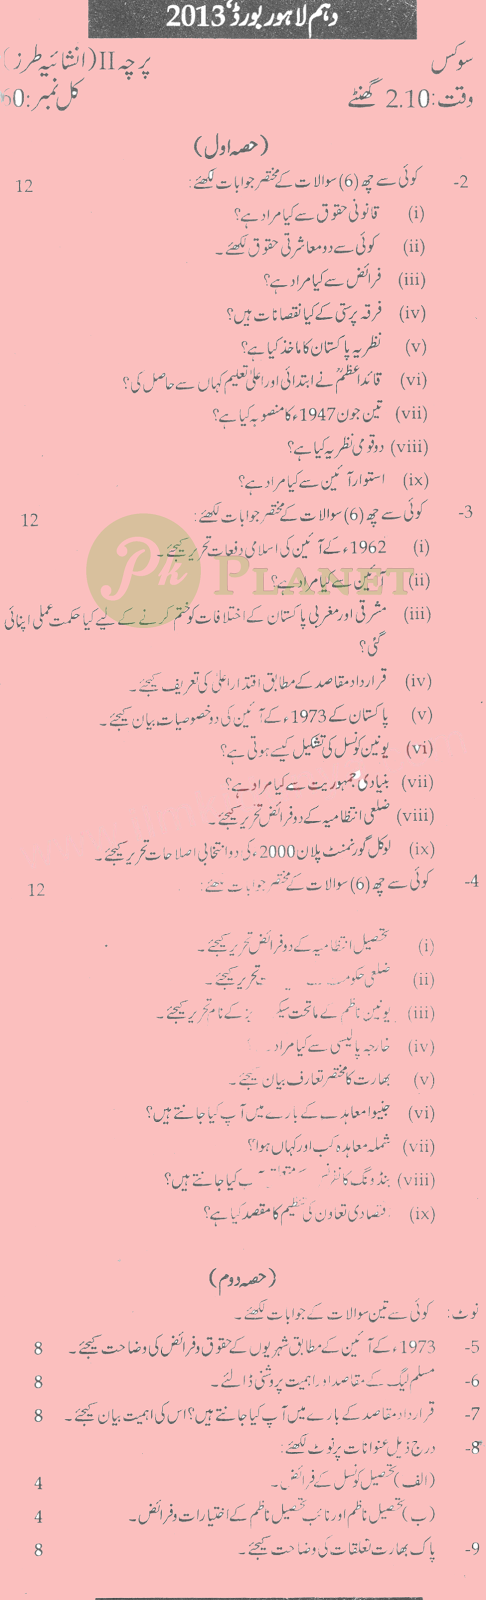 Past Papers of 10th Class Lahore Board Civics 2013